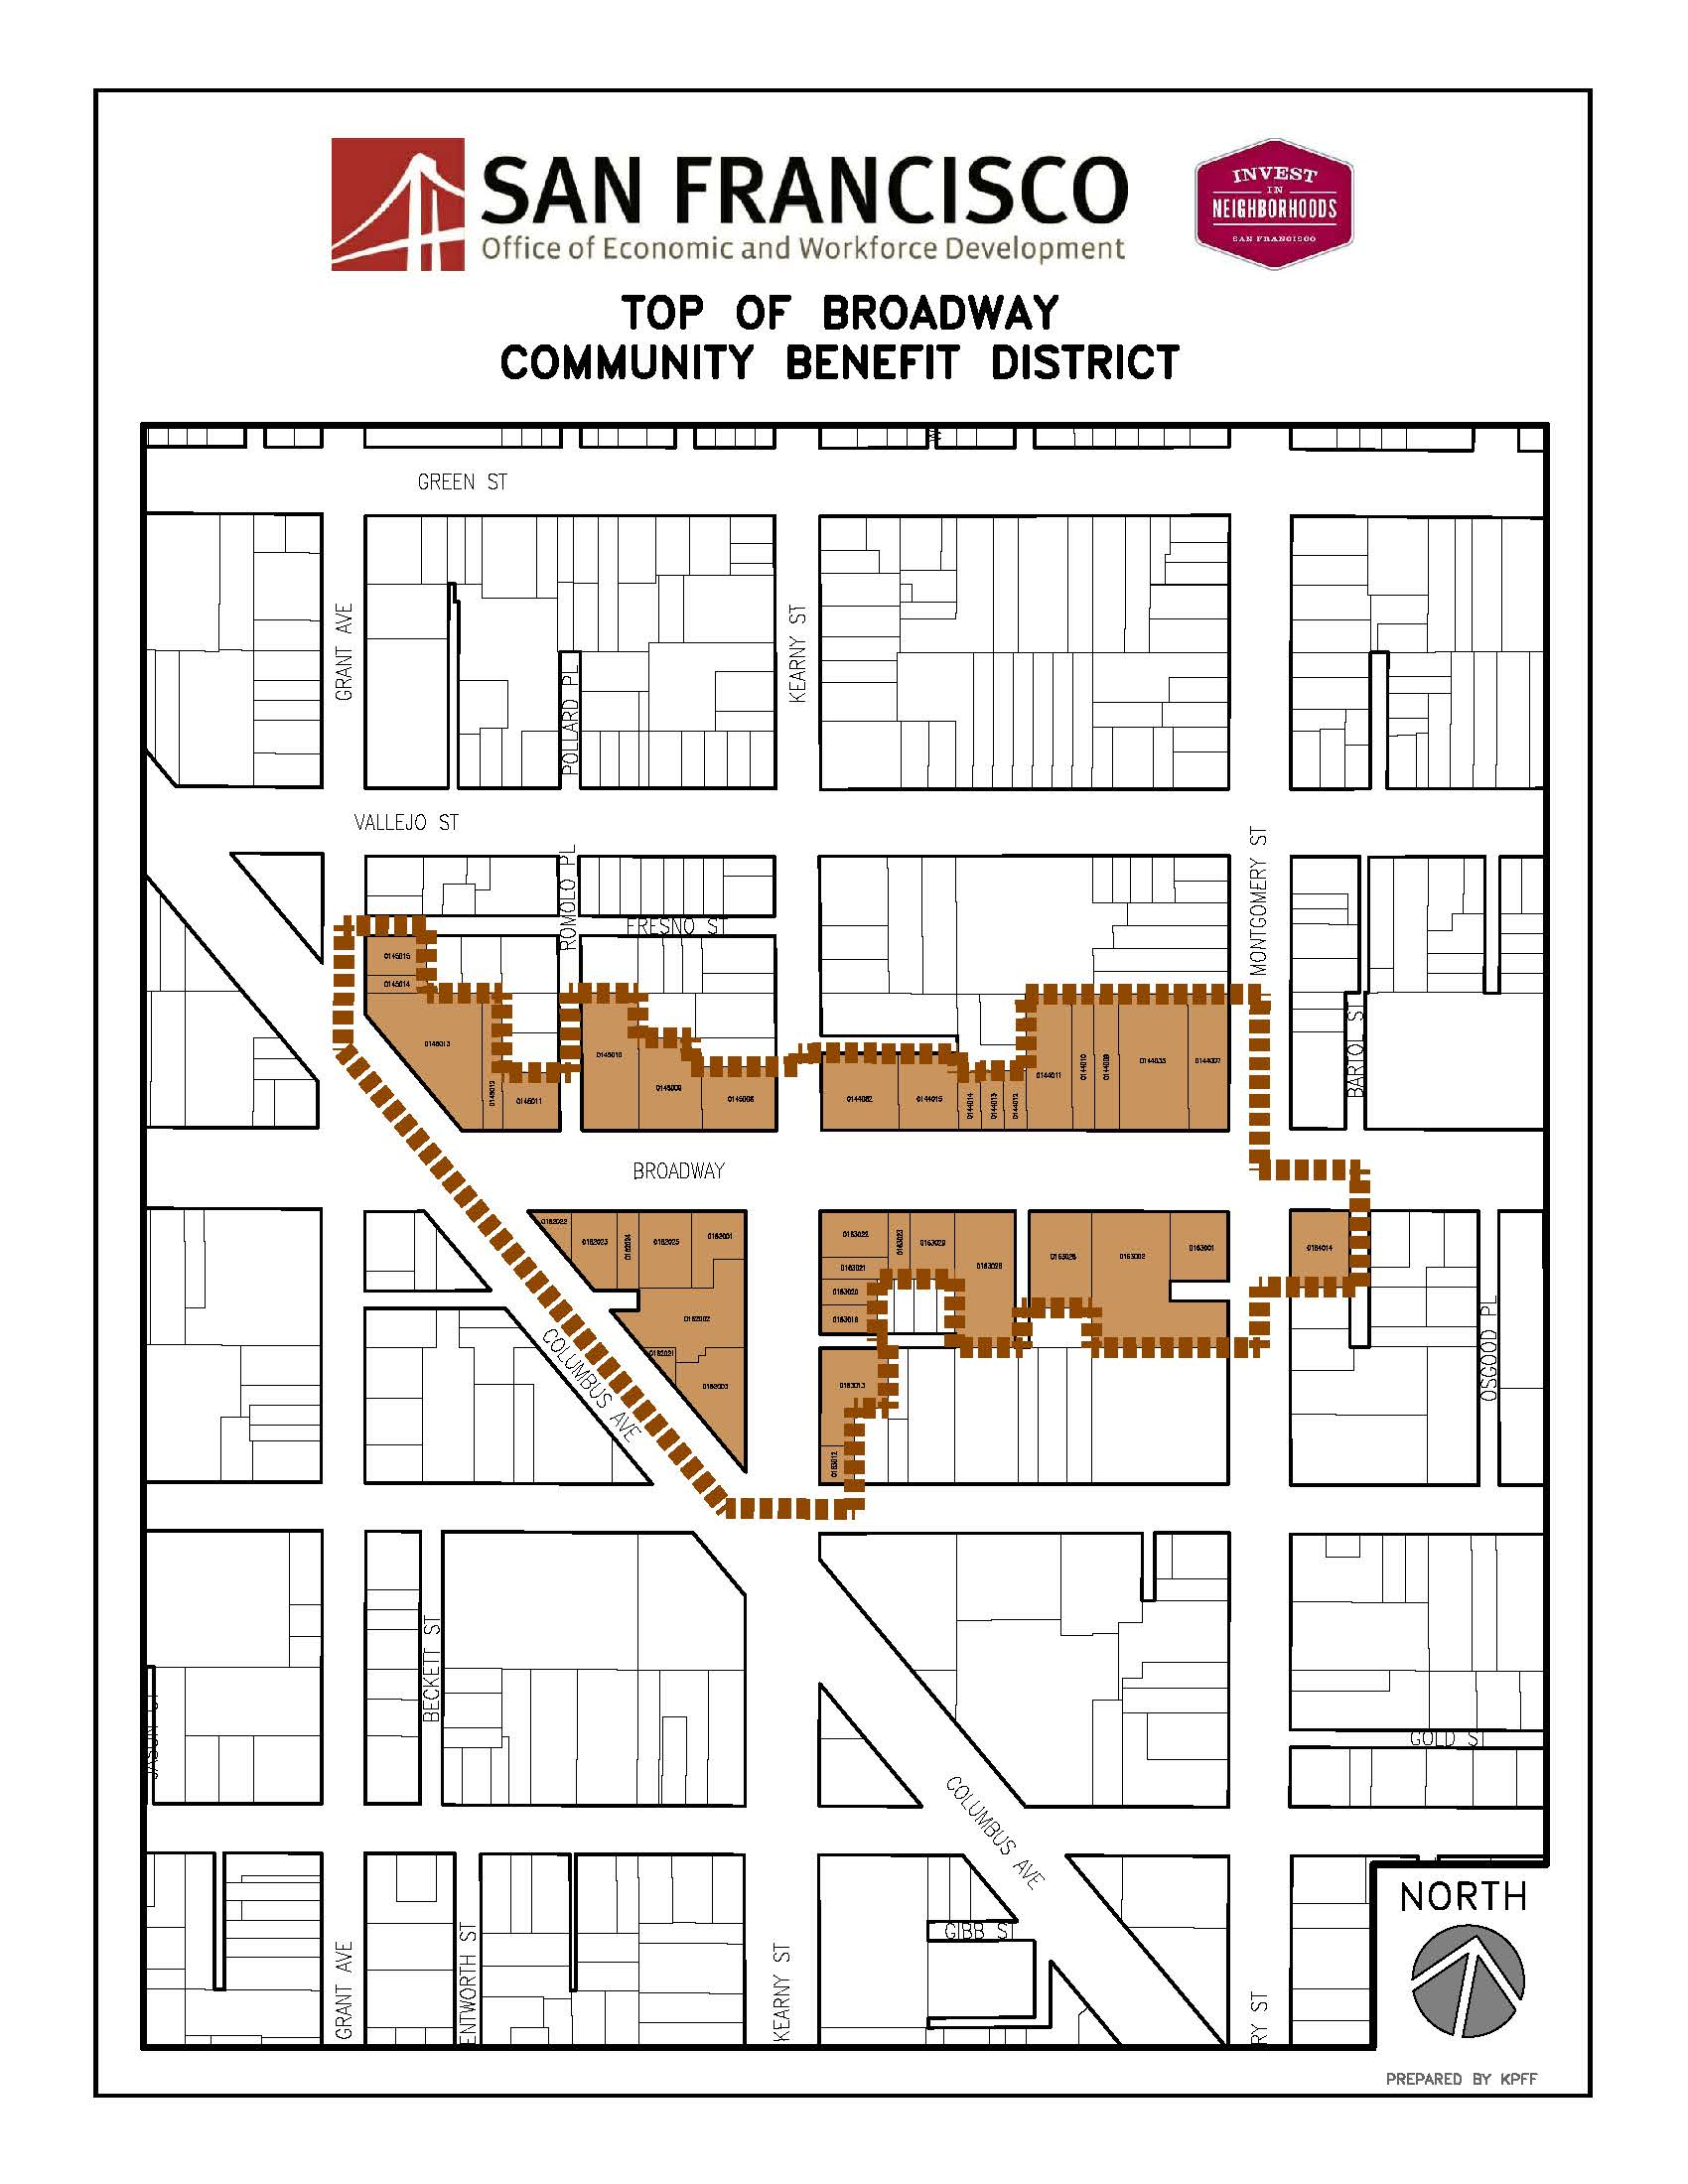 Map of Top of Broadway Community Benefit District